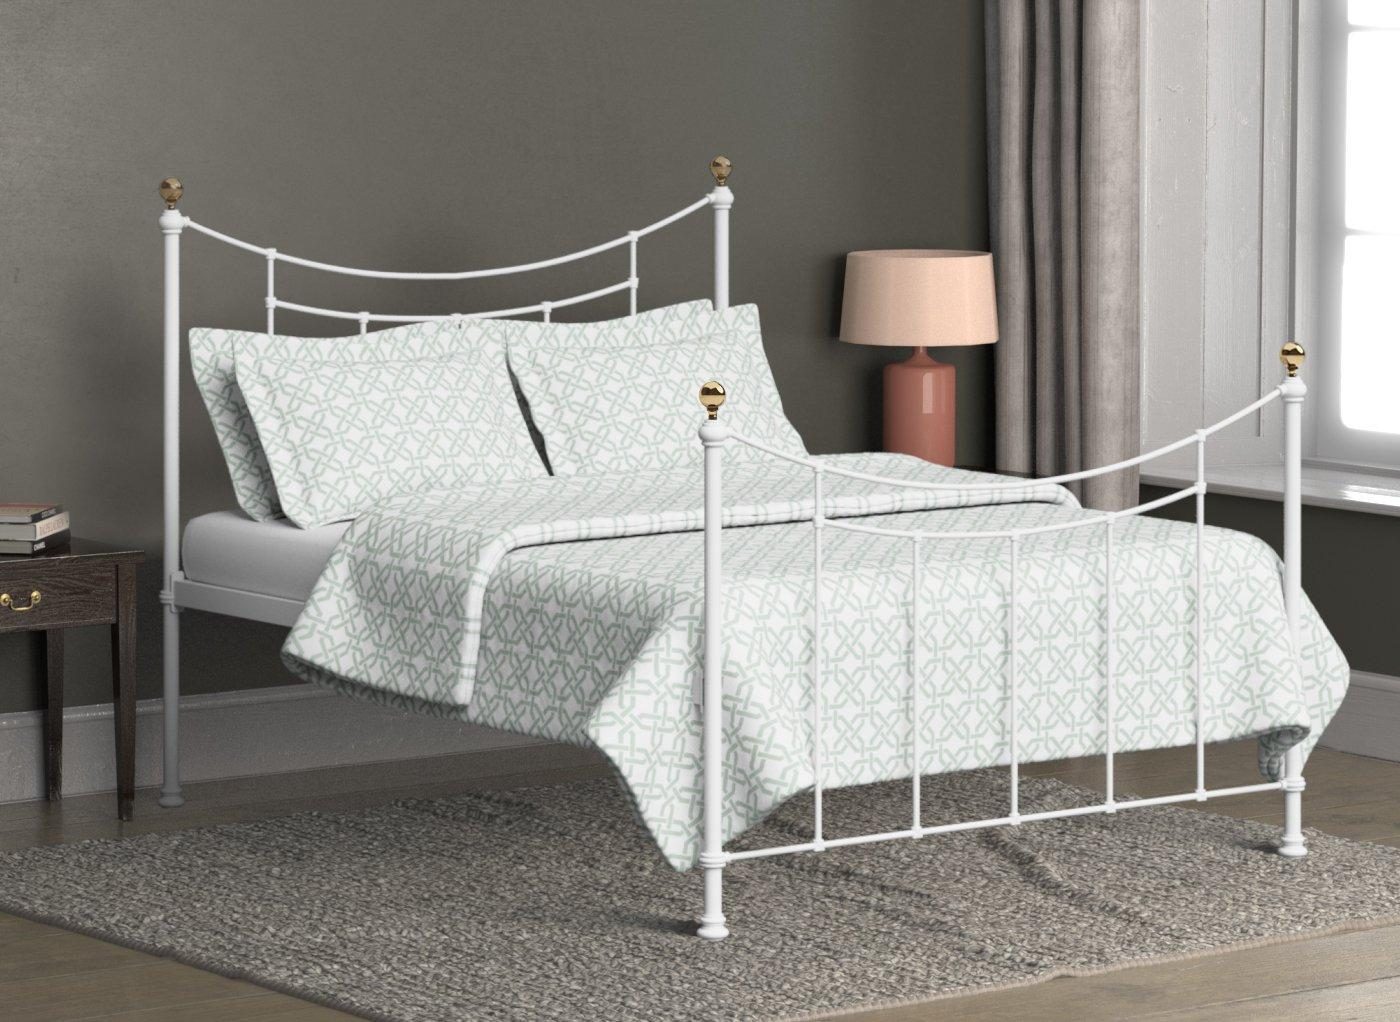 Virginia Satin White Metal Bed Frame 3'0 Single